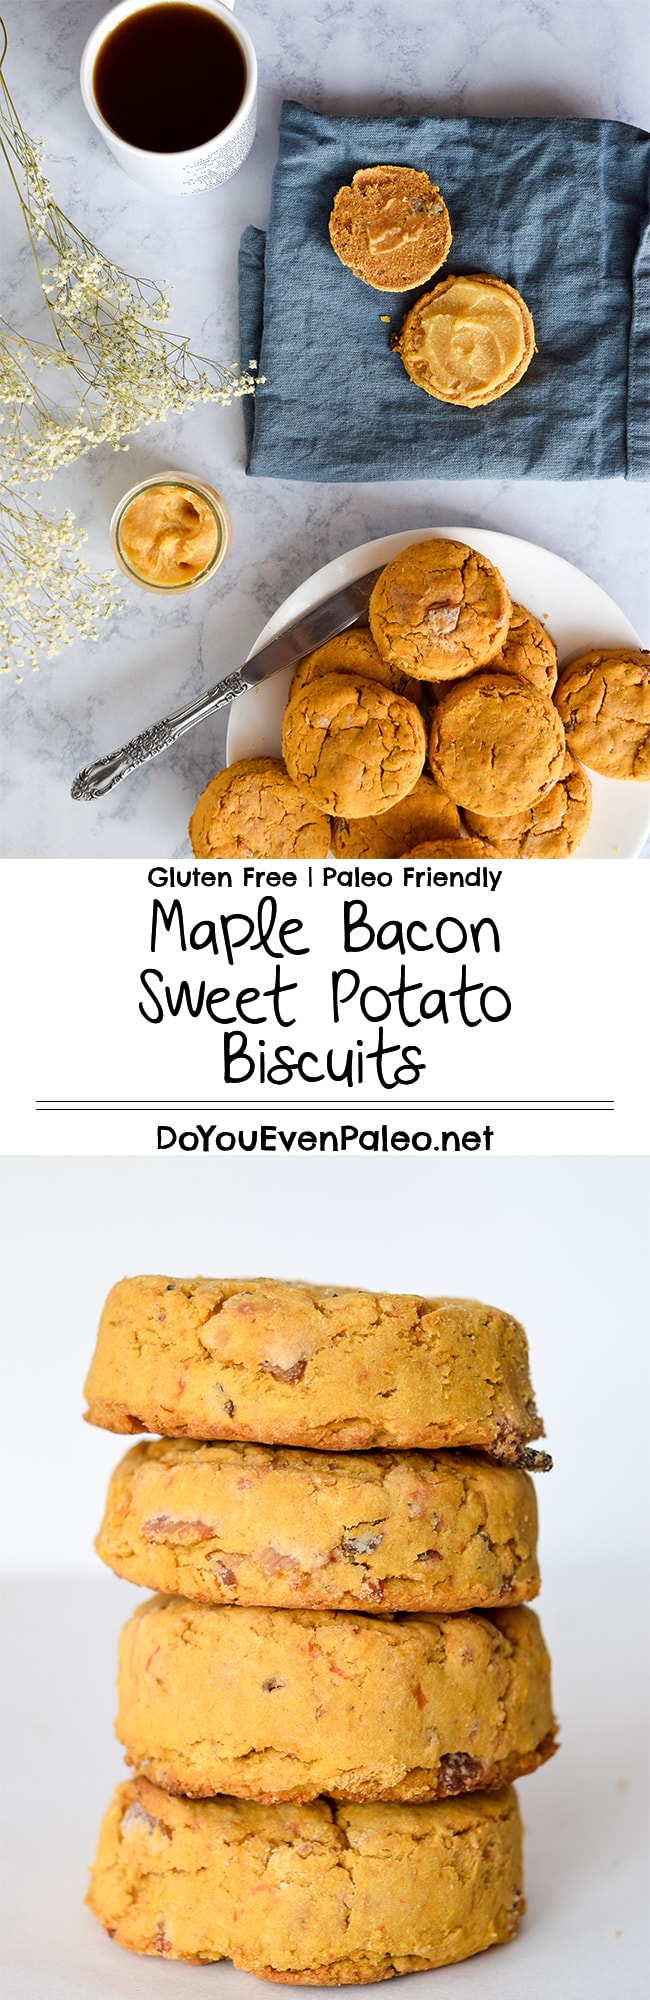 Maple Bacon Sweet Potato Biscuits plus a quick recipe for maple ghee! These biscuits are gluten free and dairy free with paleo-friendly options. | DoYouEvenPaleo.net